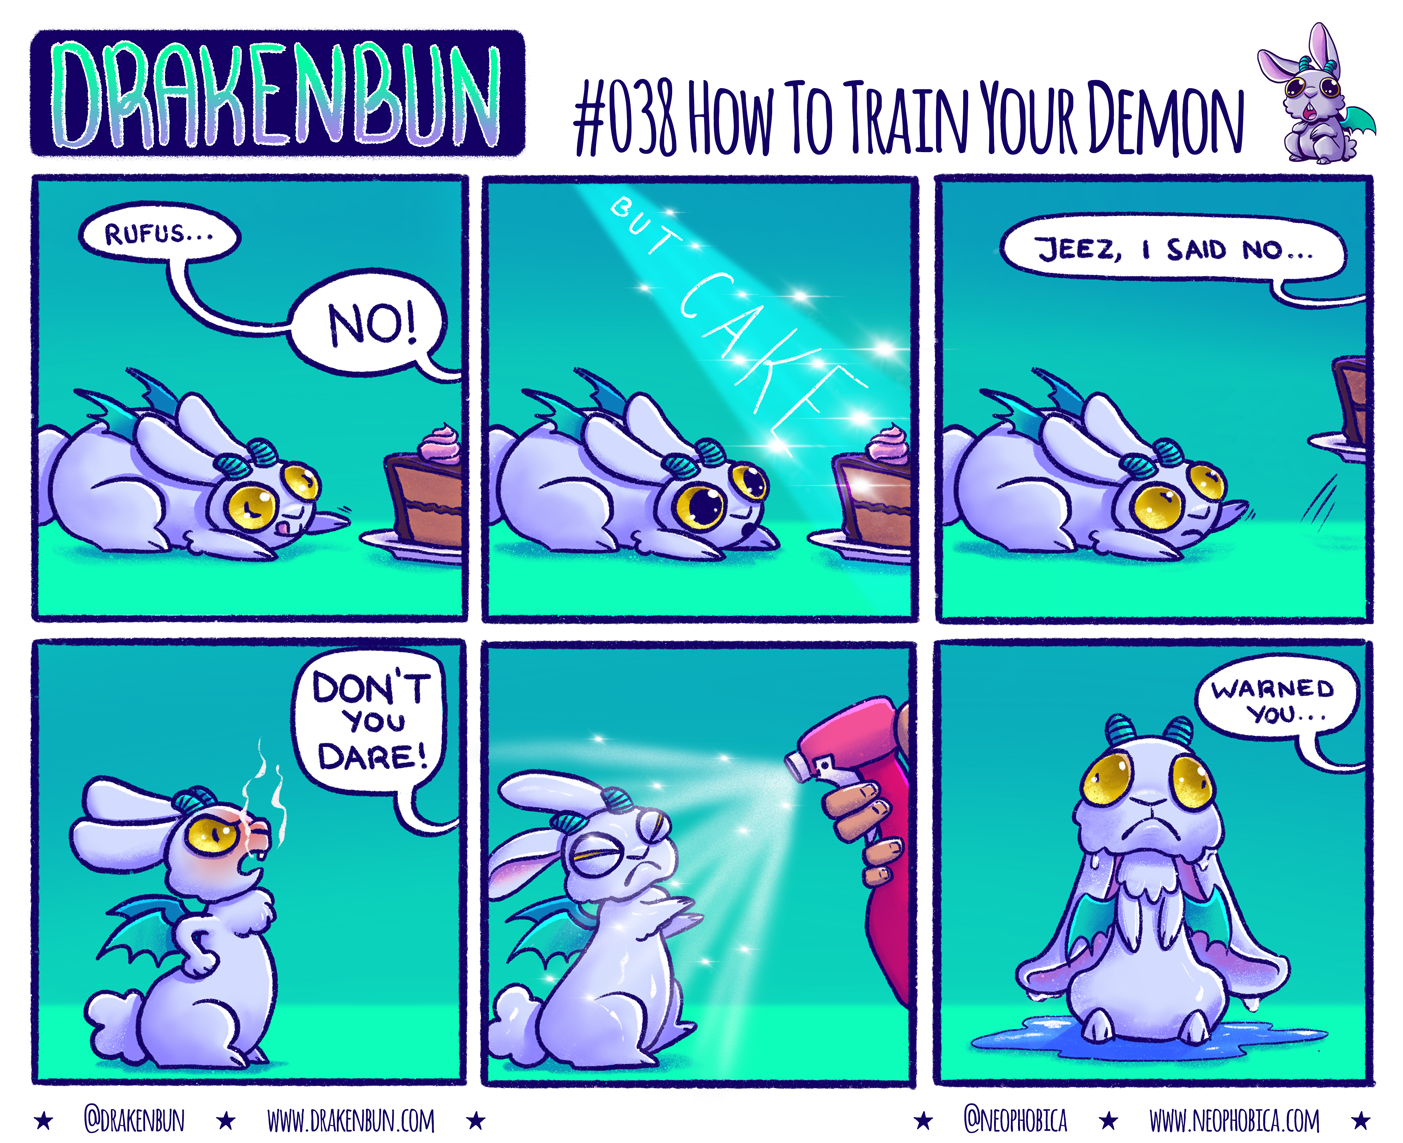 #038 How To Train Your Demon